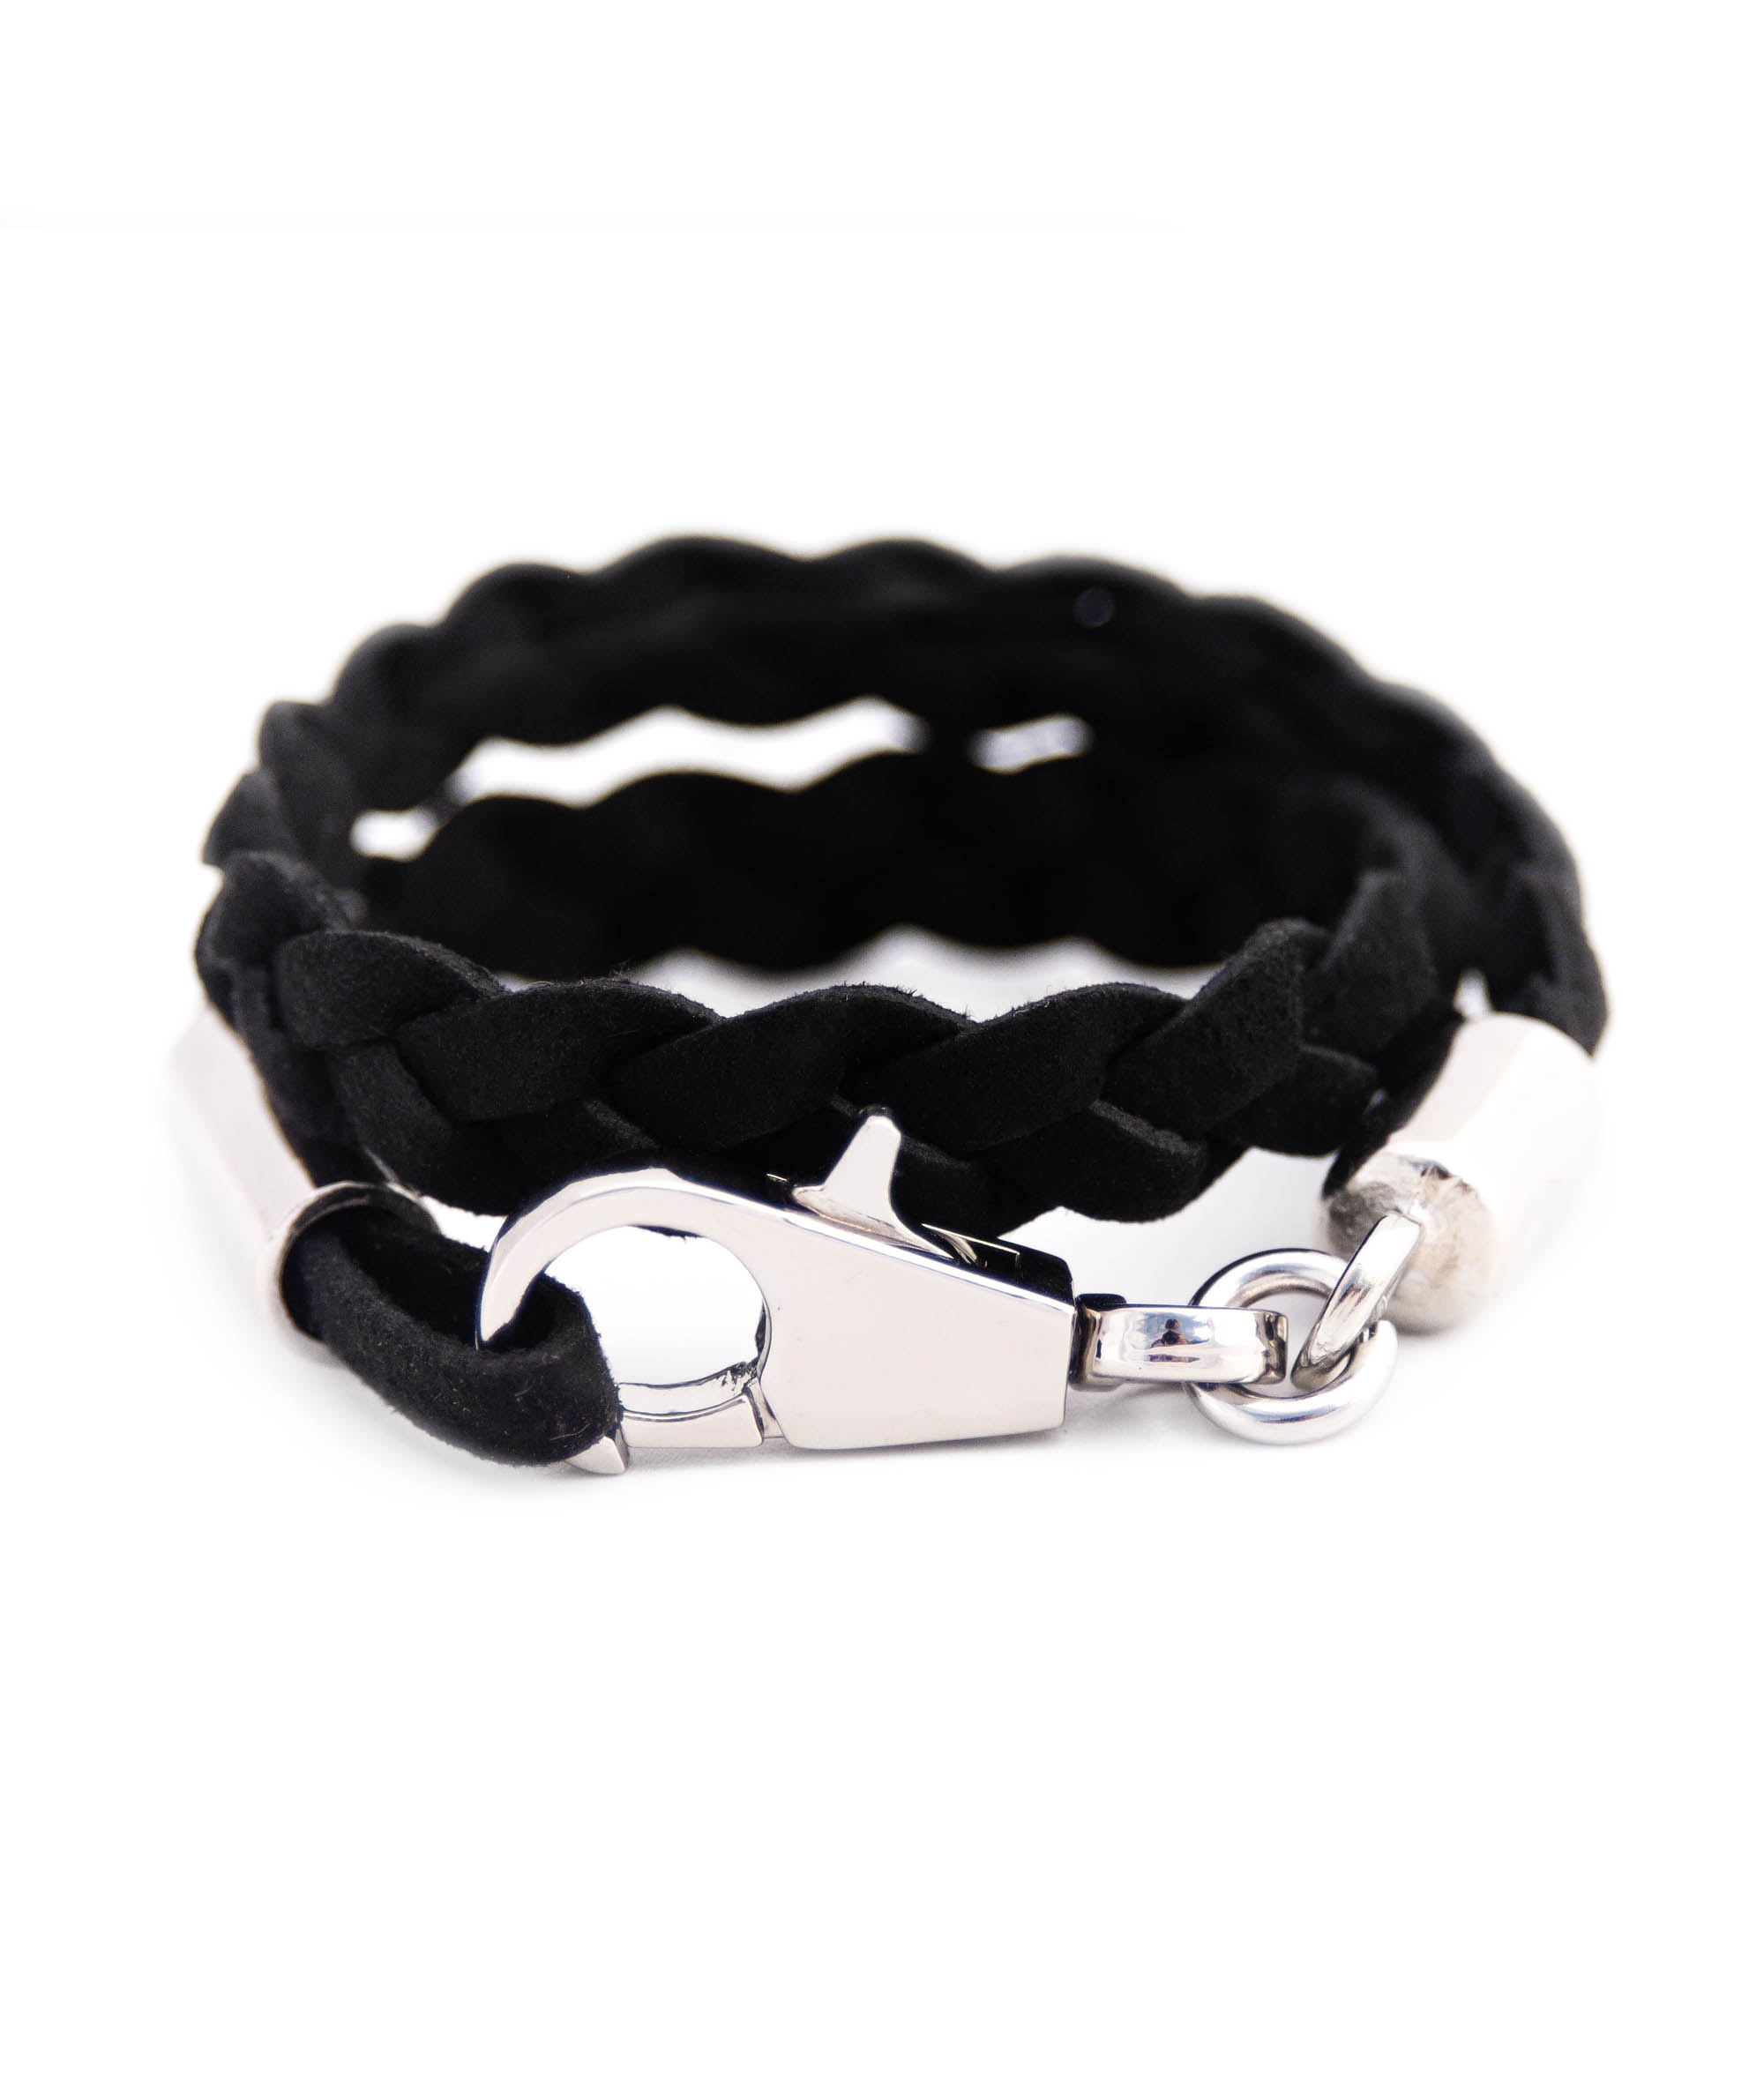 cord of black hires en london venture mens bracelet gb links